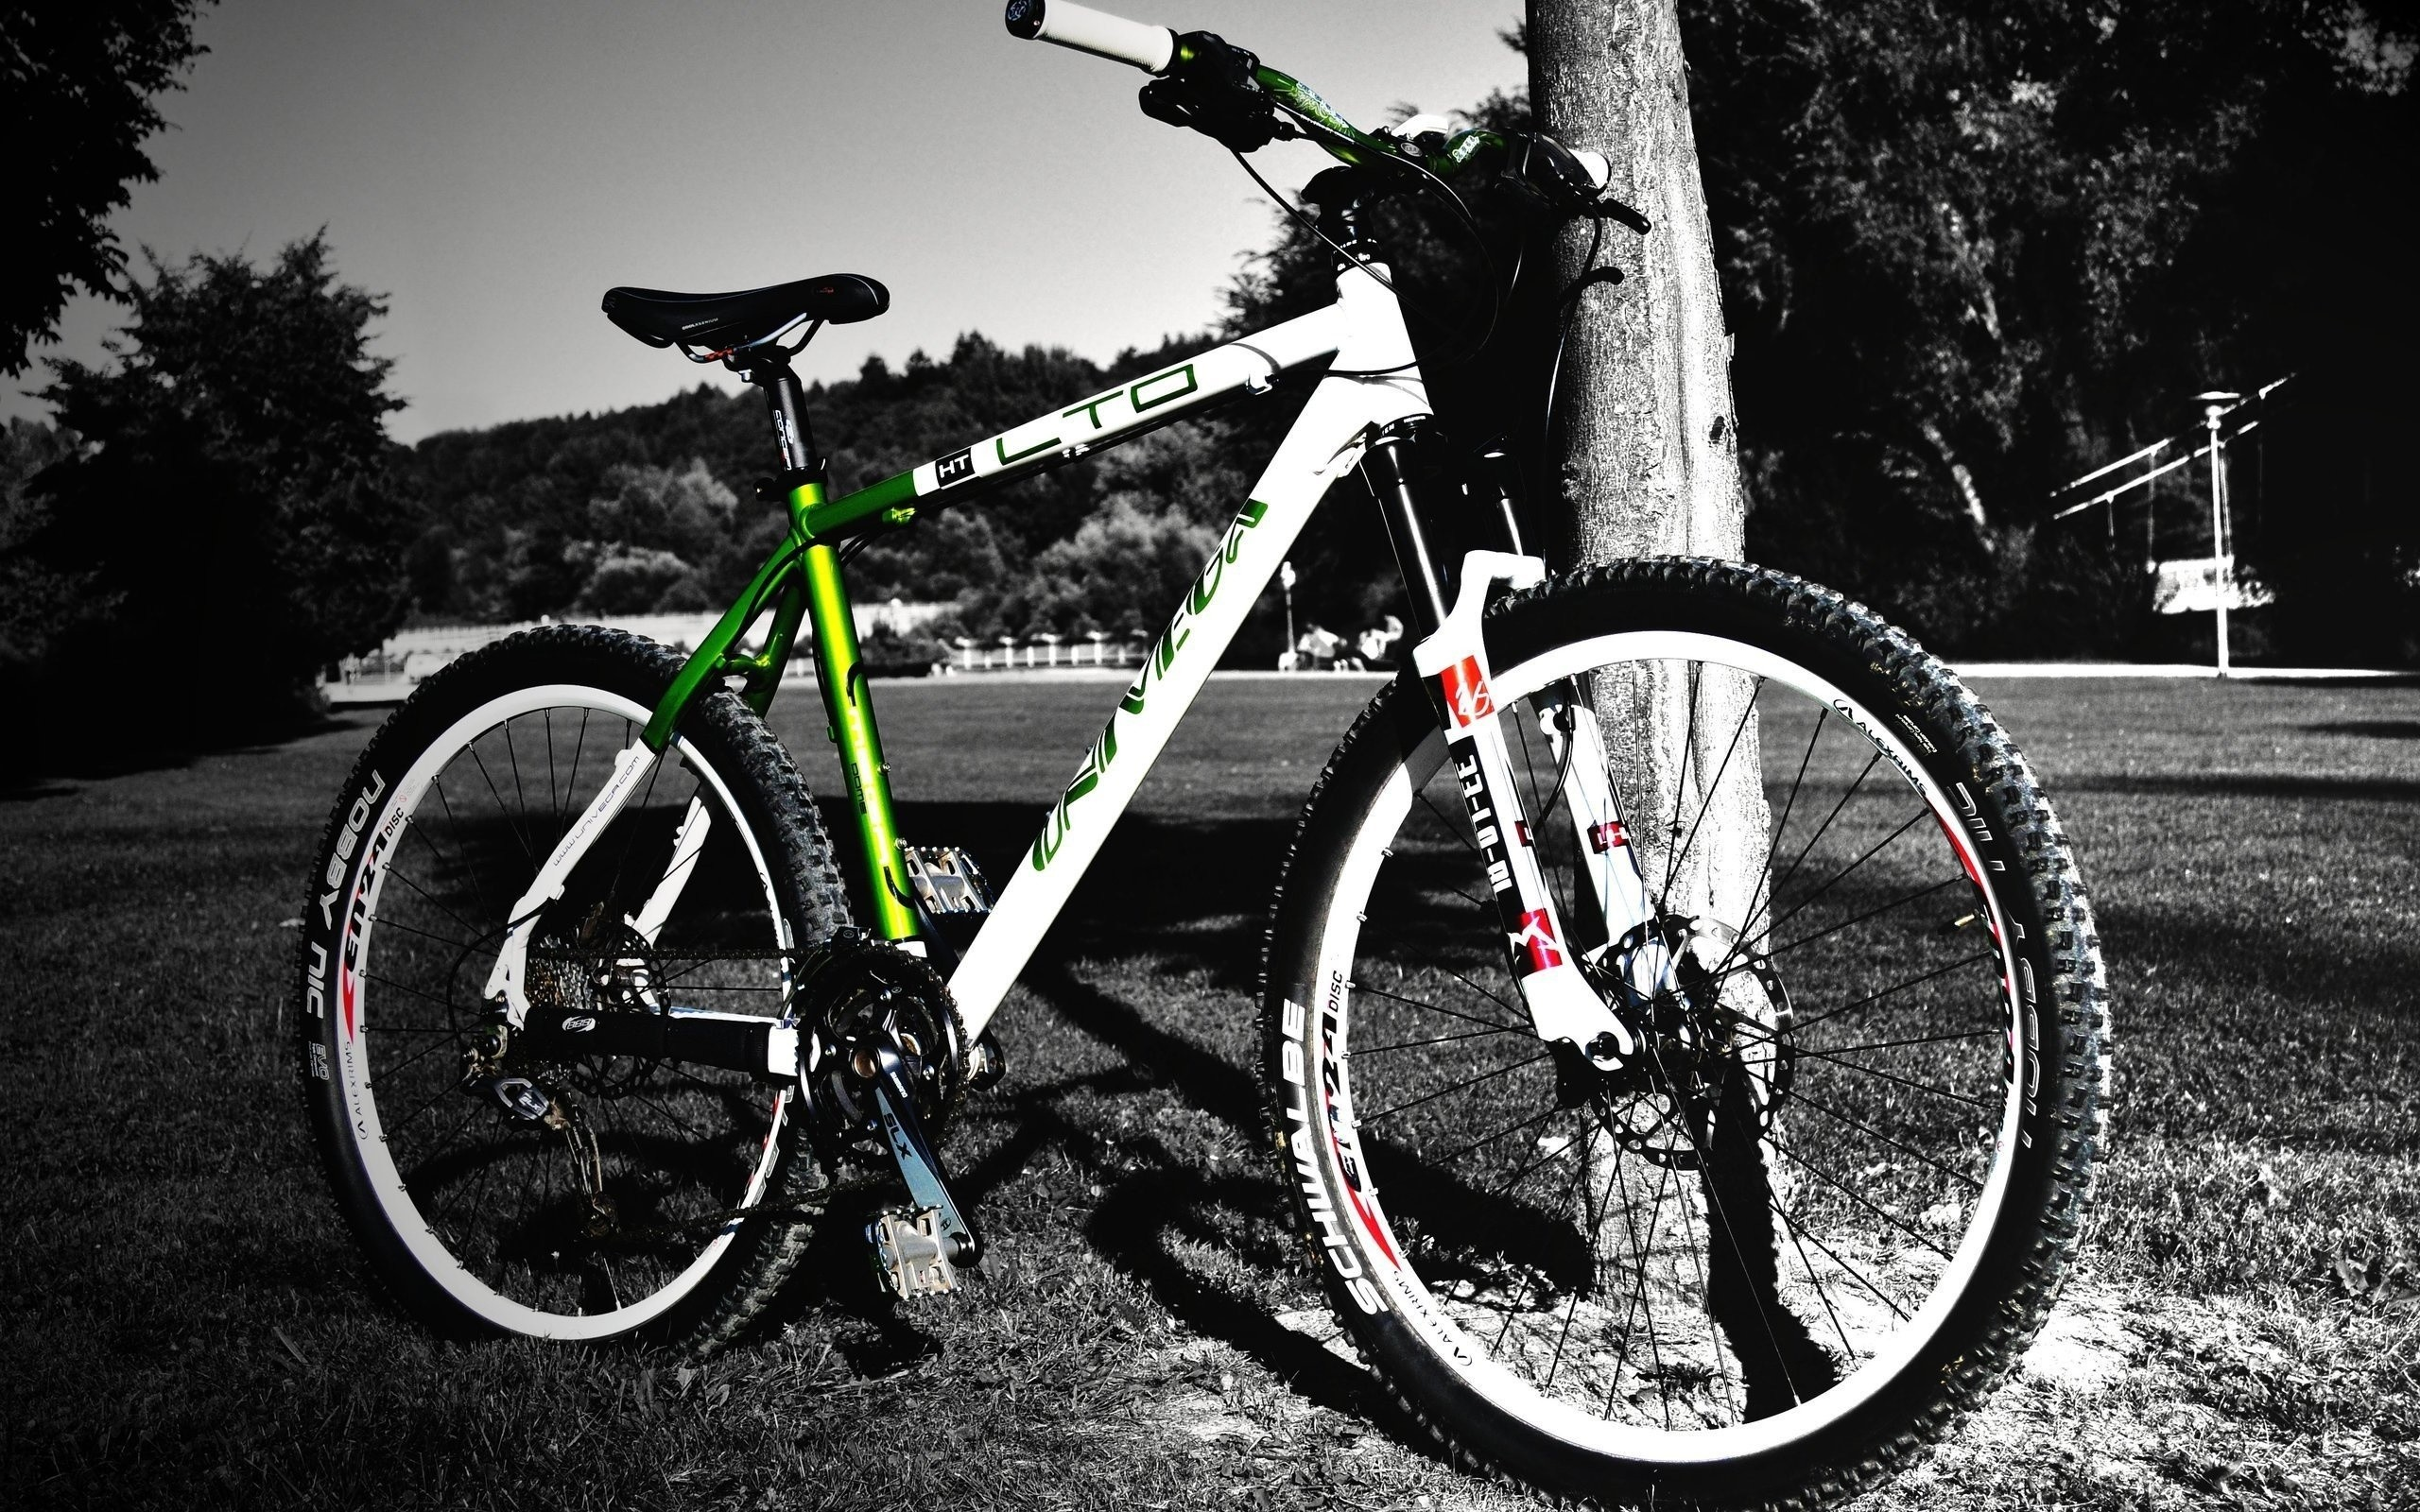 Res: 2560x1600, Road/Mountain Bicycles